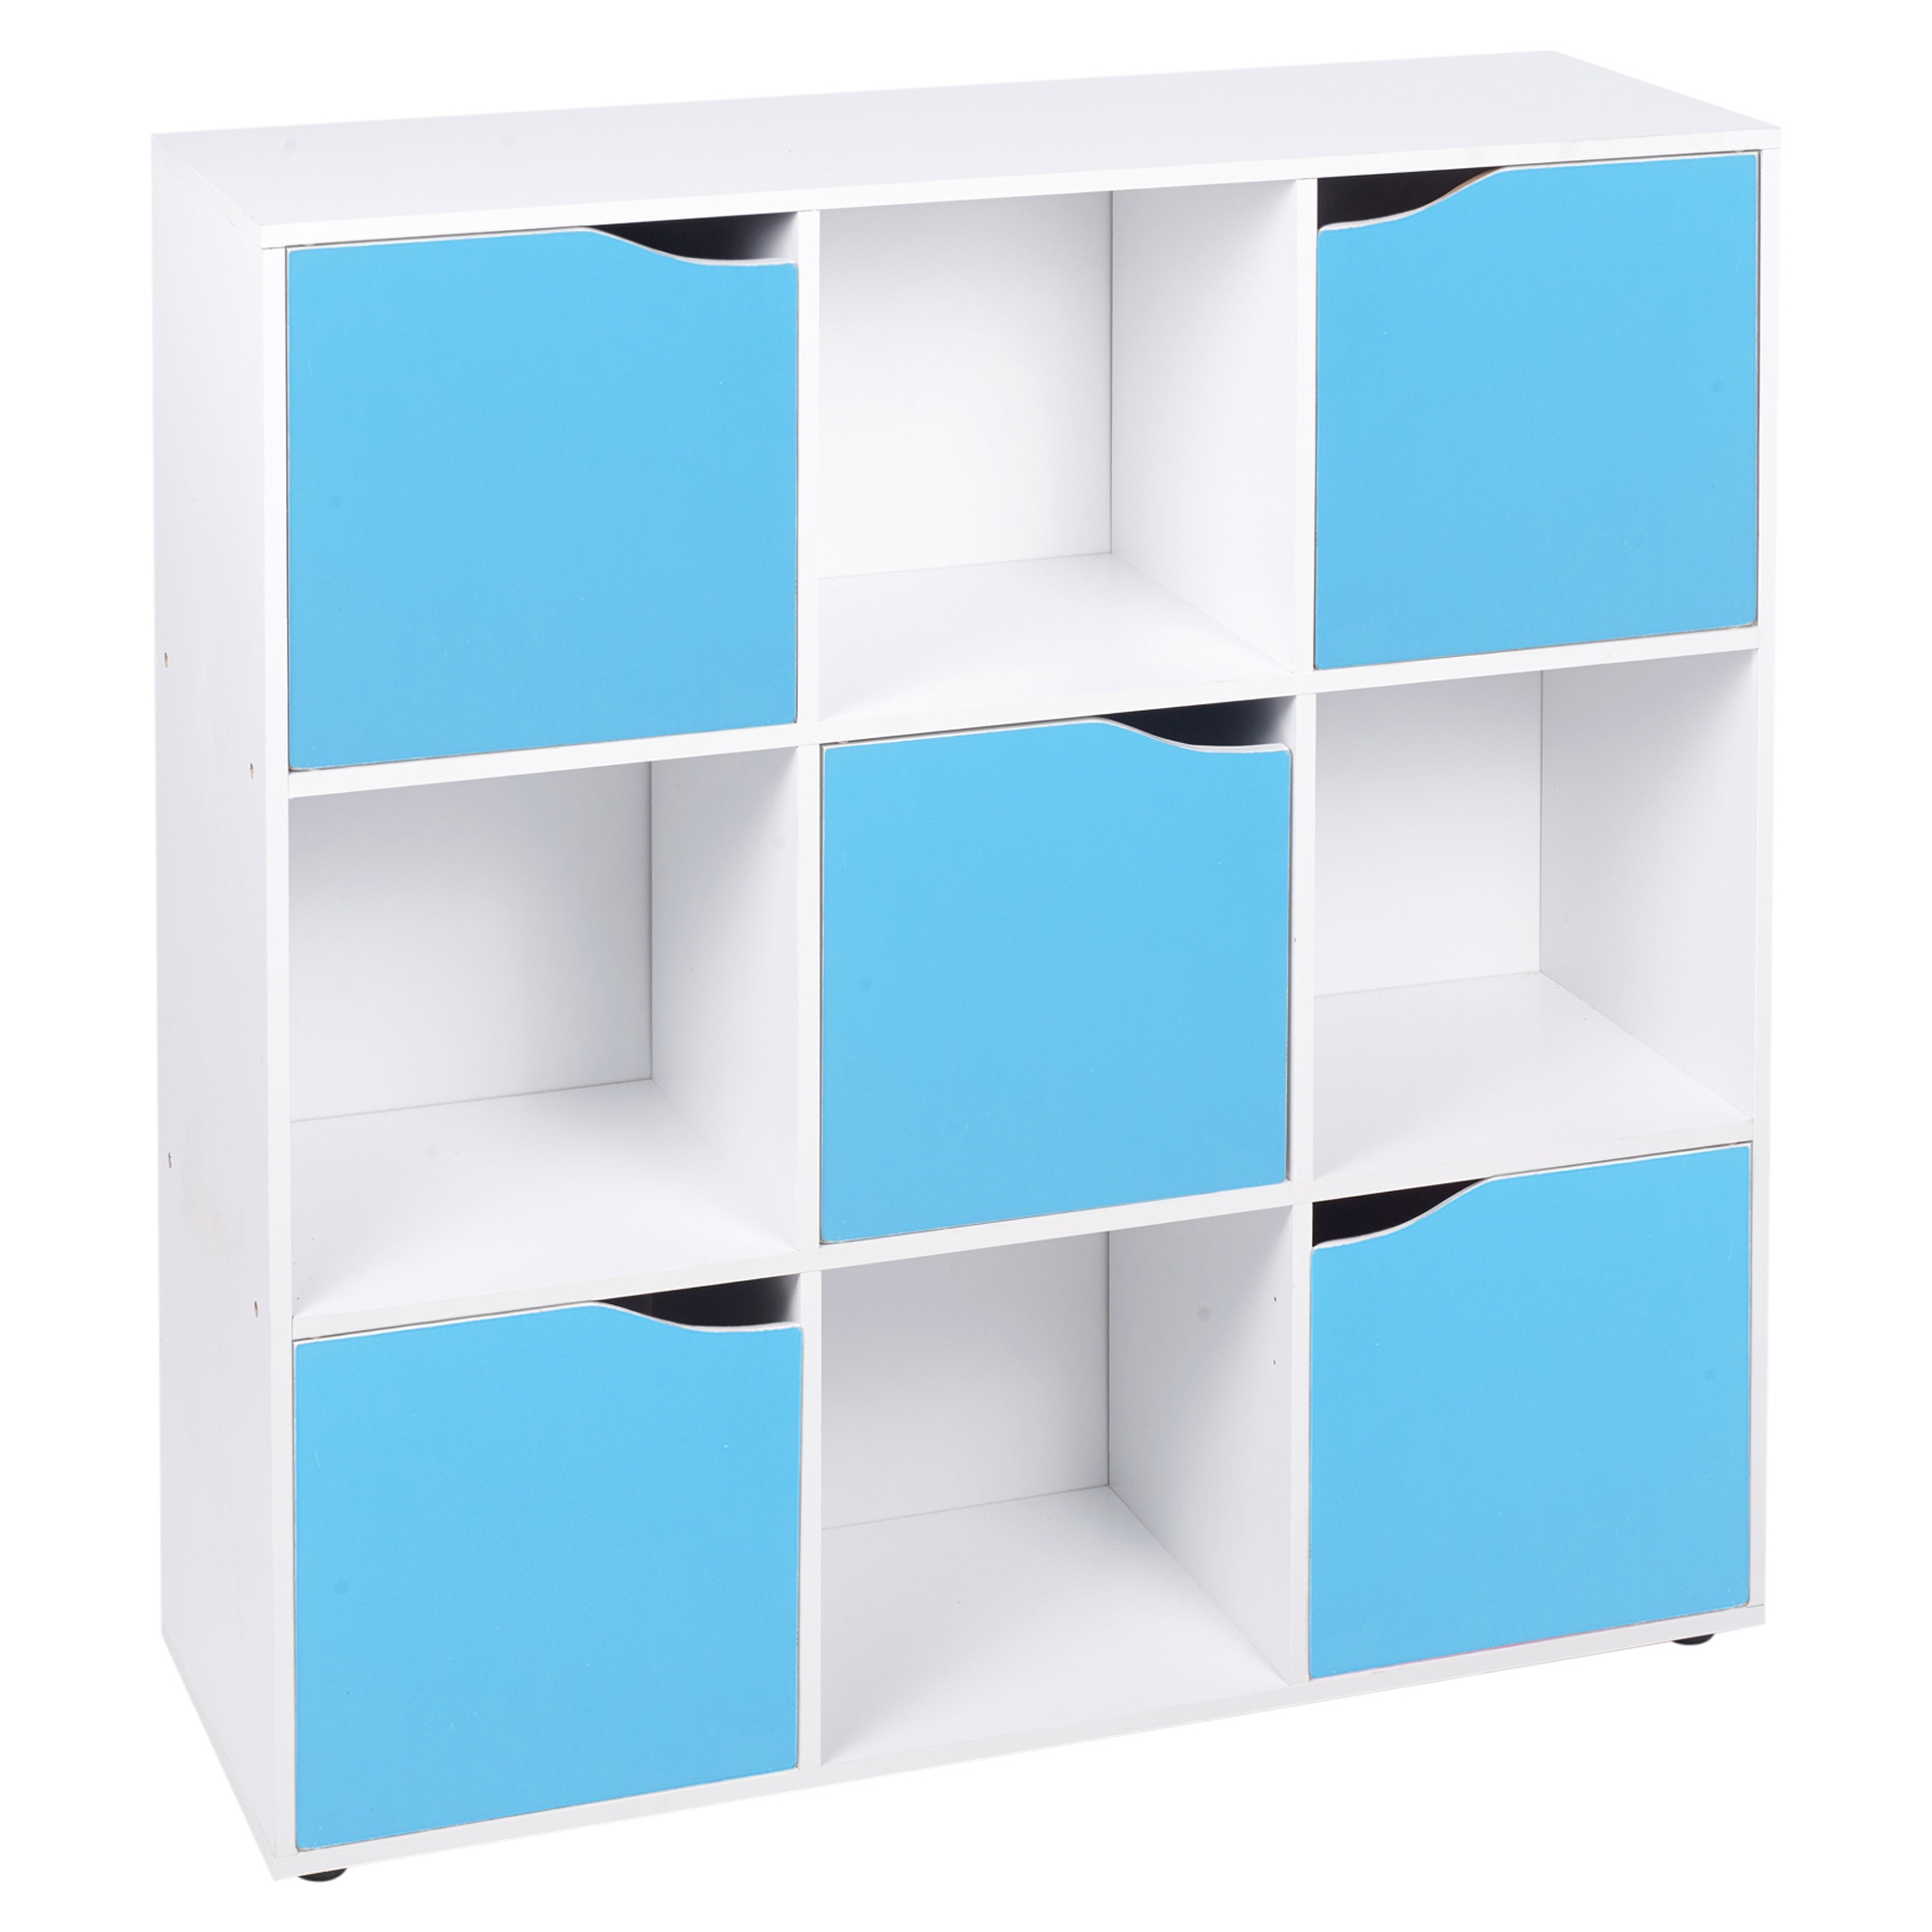 furniture bespoke bookcases bookcase black targetcube pics ikea shelves targetwhite options wall target storage planscube planswall tri cube wheels cubed and bookcaseblack on twenty